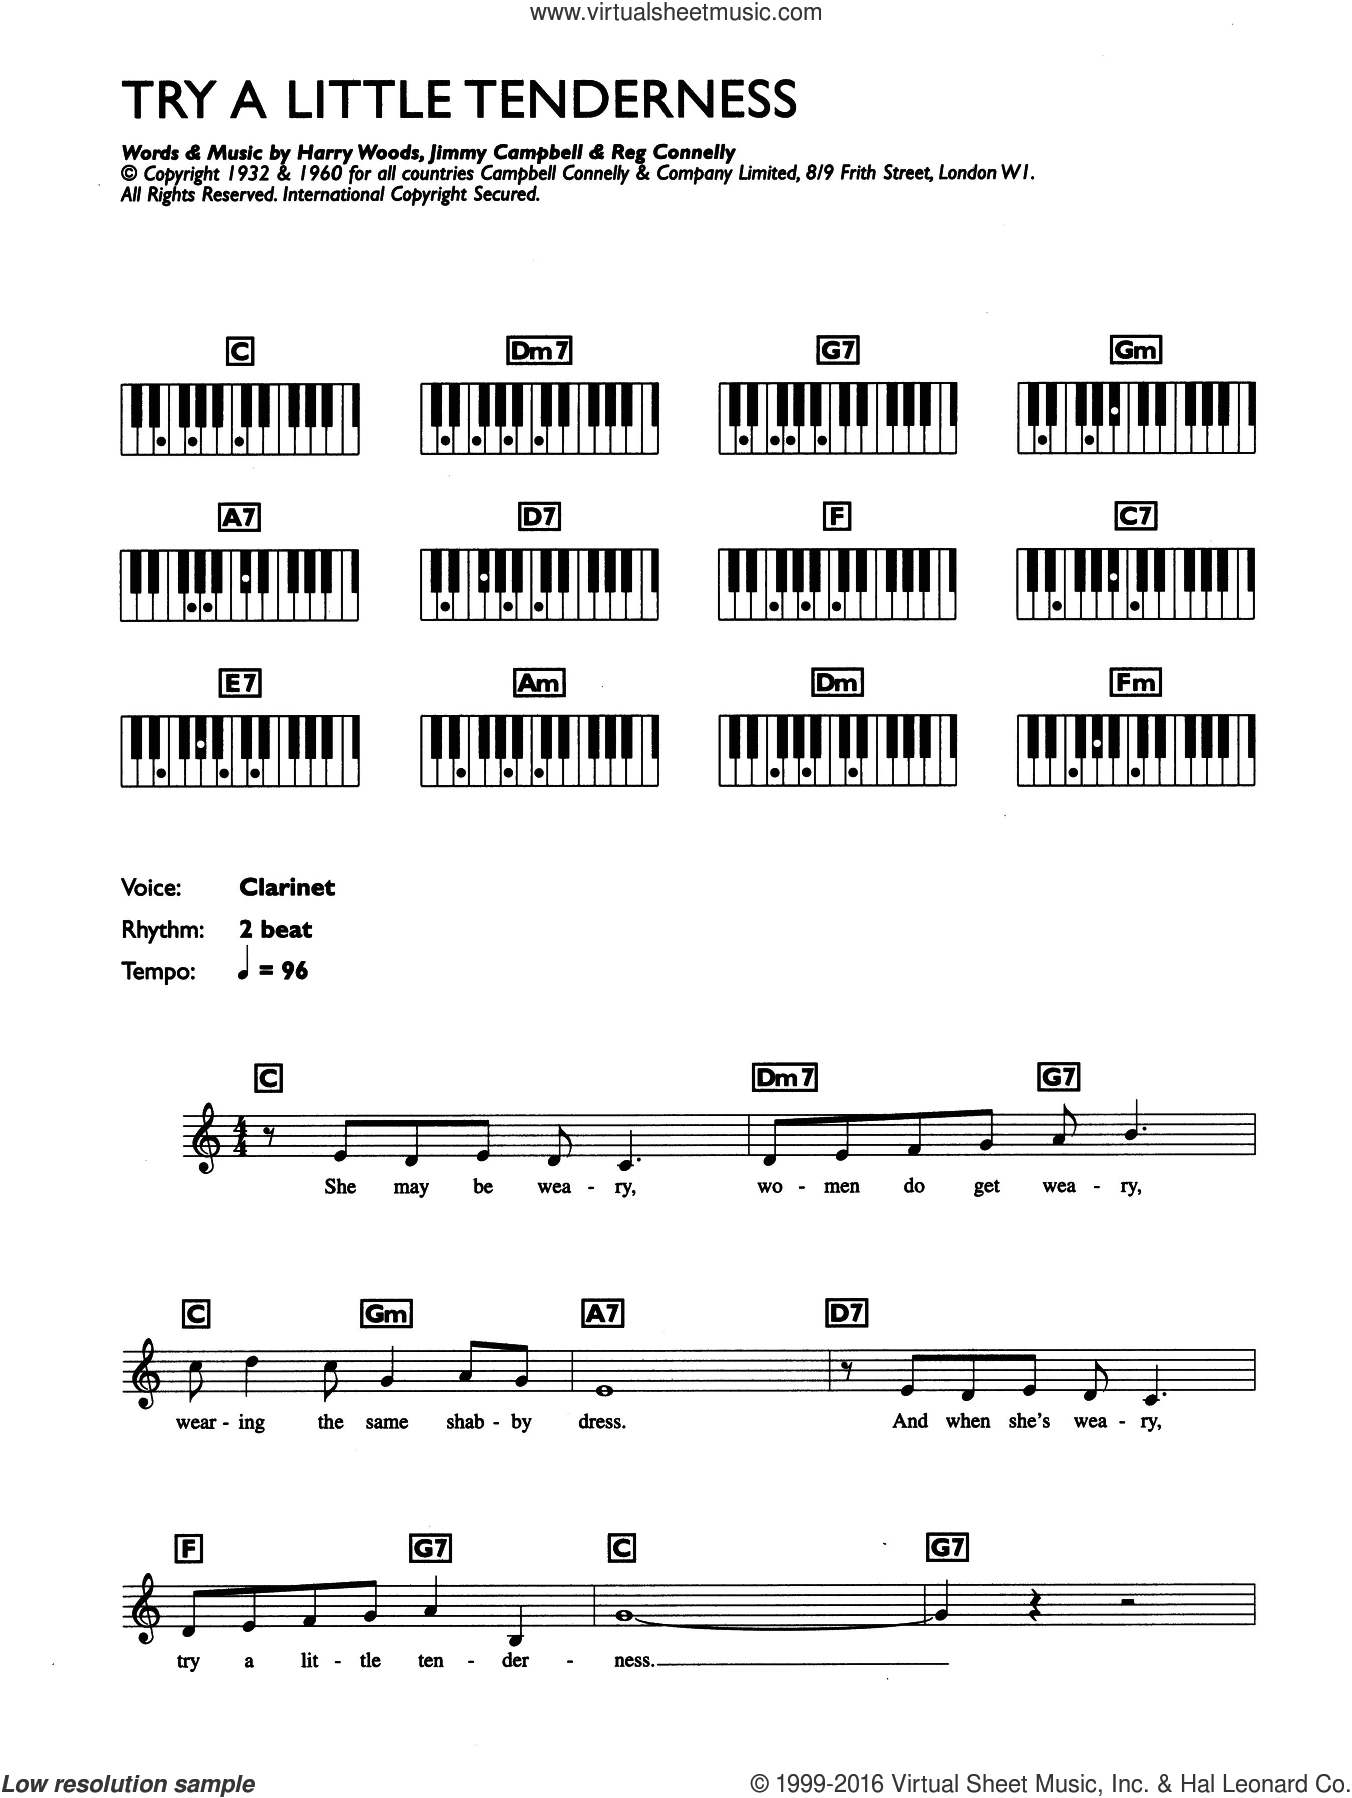 Try A Little Tenderness sheet music for piano solo (chords, lyrics, melody) by Reg Connelly, Otis Redding, Harry Woods and Jimmy Campbell. Score Image Preview.